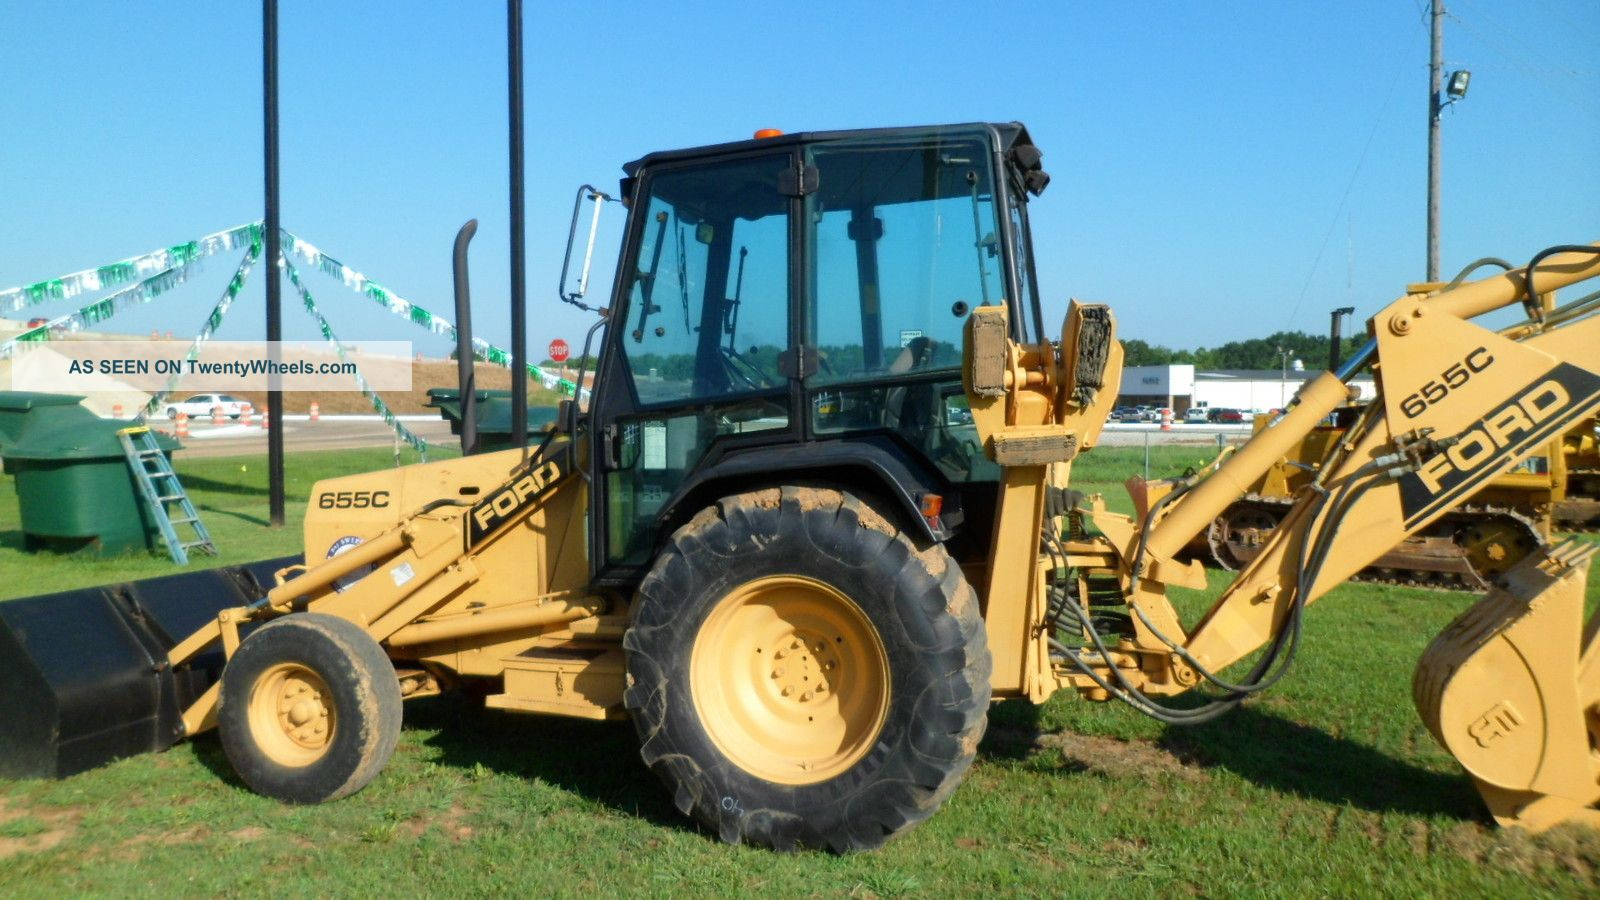 Ford 655d Backhoe Parts : Ford c backhoe weight